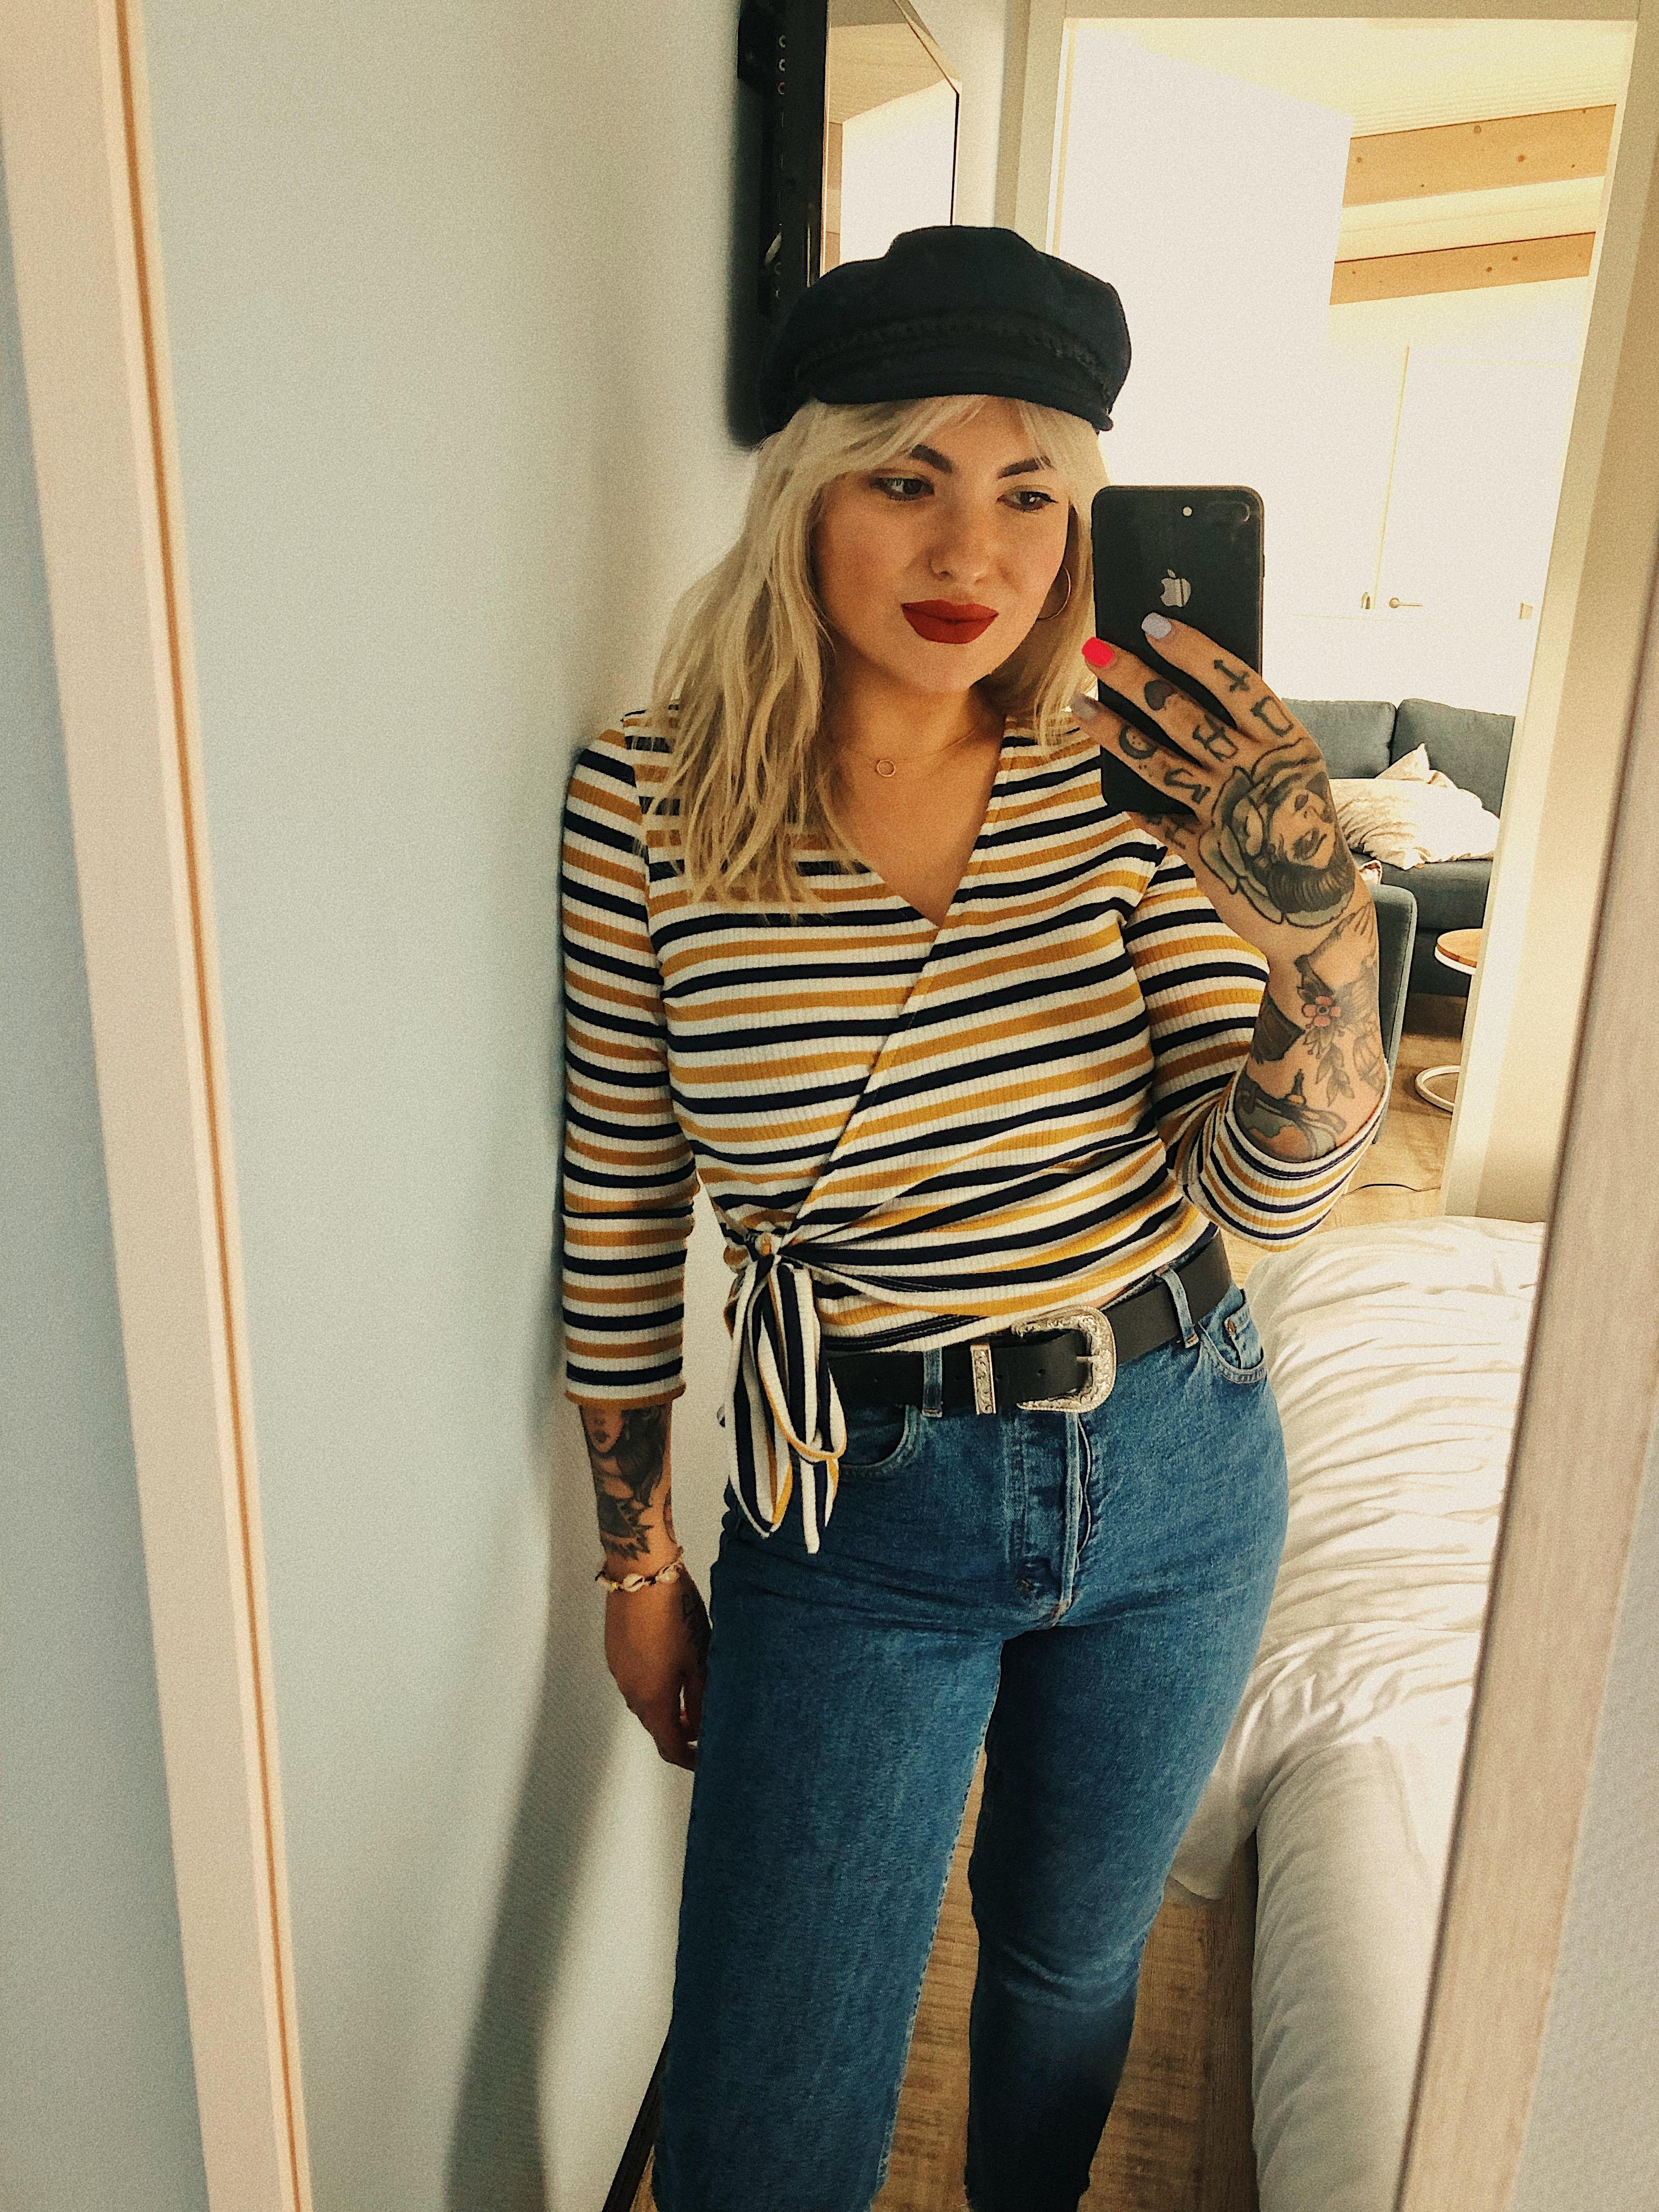 STRIPES #fashioncrush #ootd #unterarmtattoo #tattoos